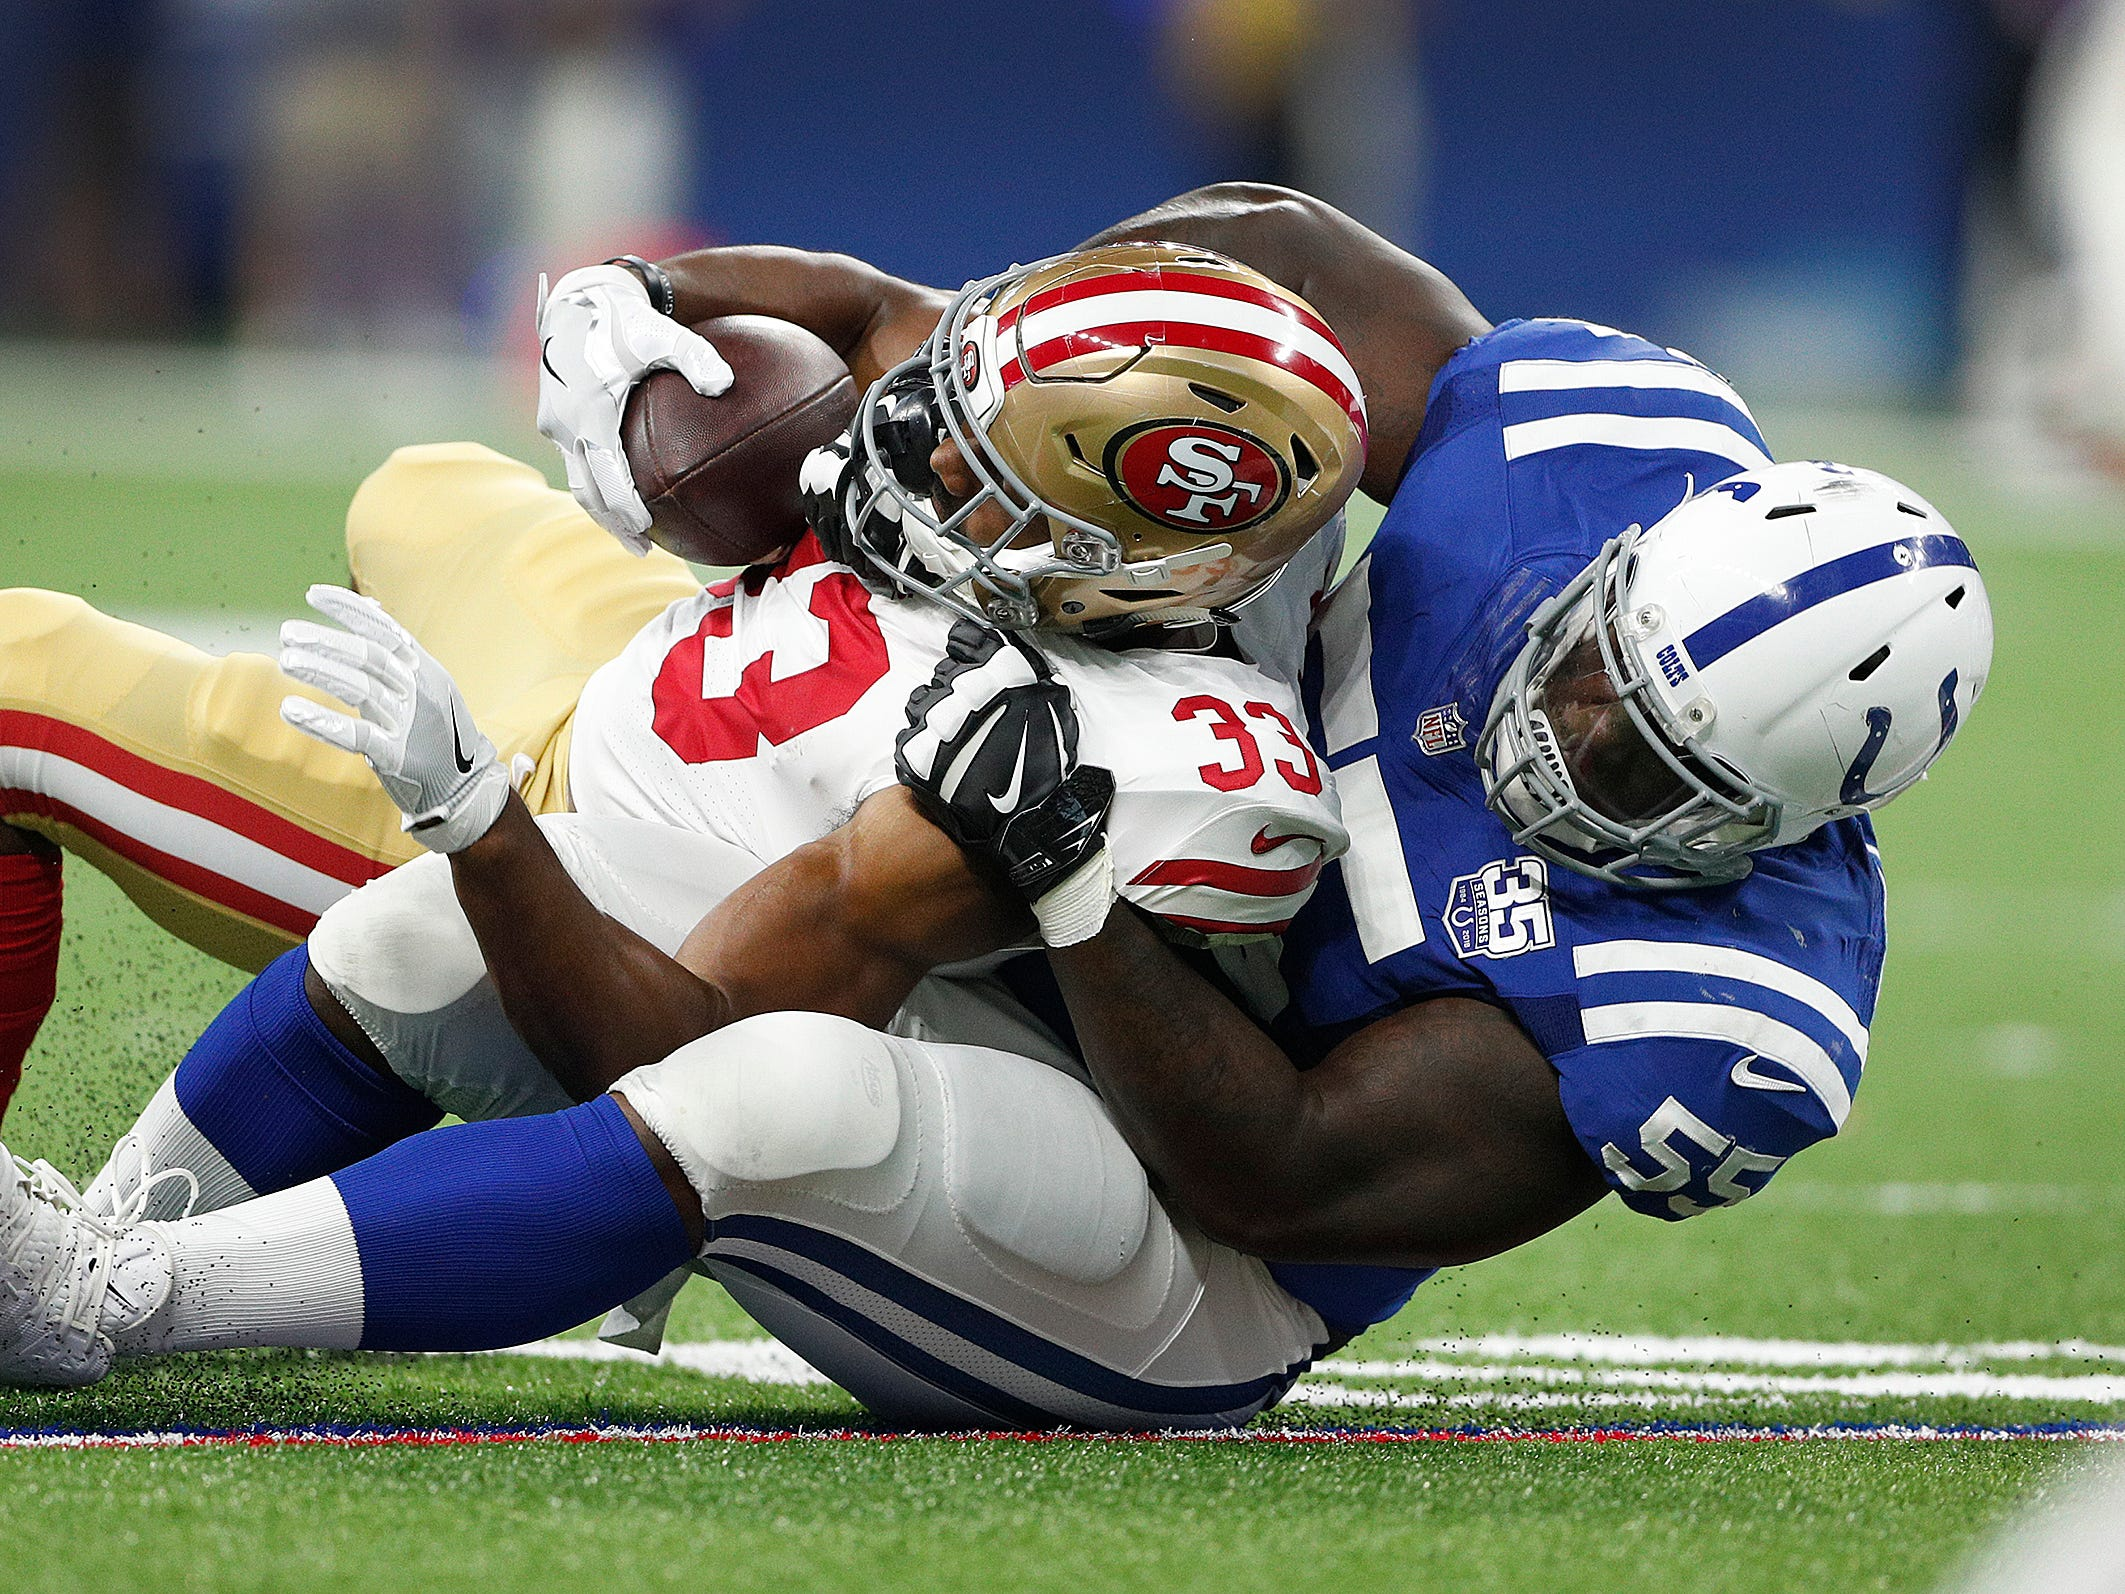 Indianapolis Colts defensive end Rakeem Nunez-Roches (55) tackles San Francisco 49ers running back Jeremy McNichols (33) in the second half of their preseason football game at Lucas Oil Stadium Saturday, August 25, 2018. The Colts defeated the 49ers 23-17.